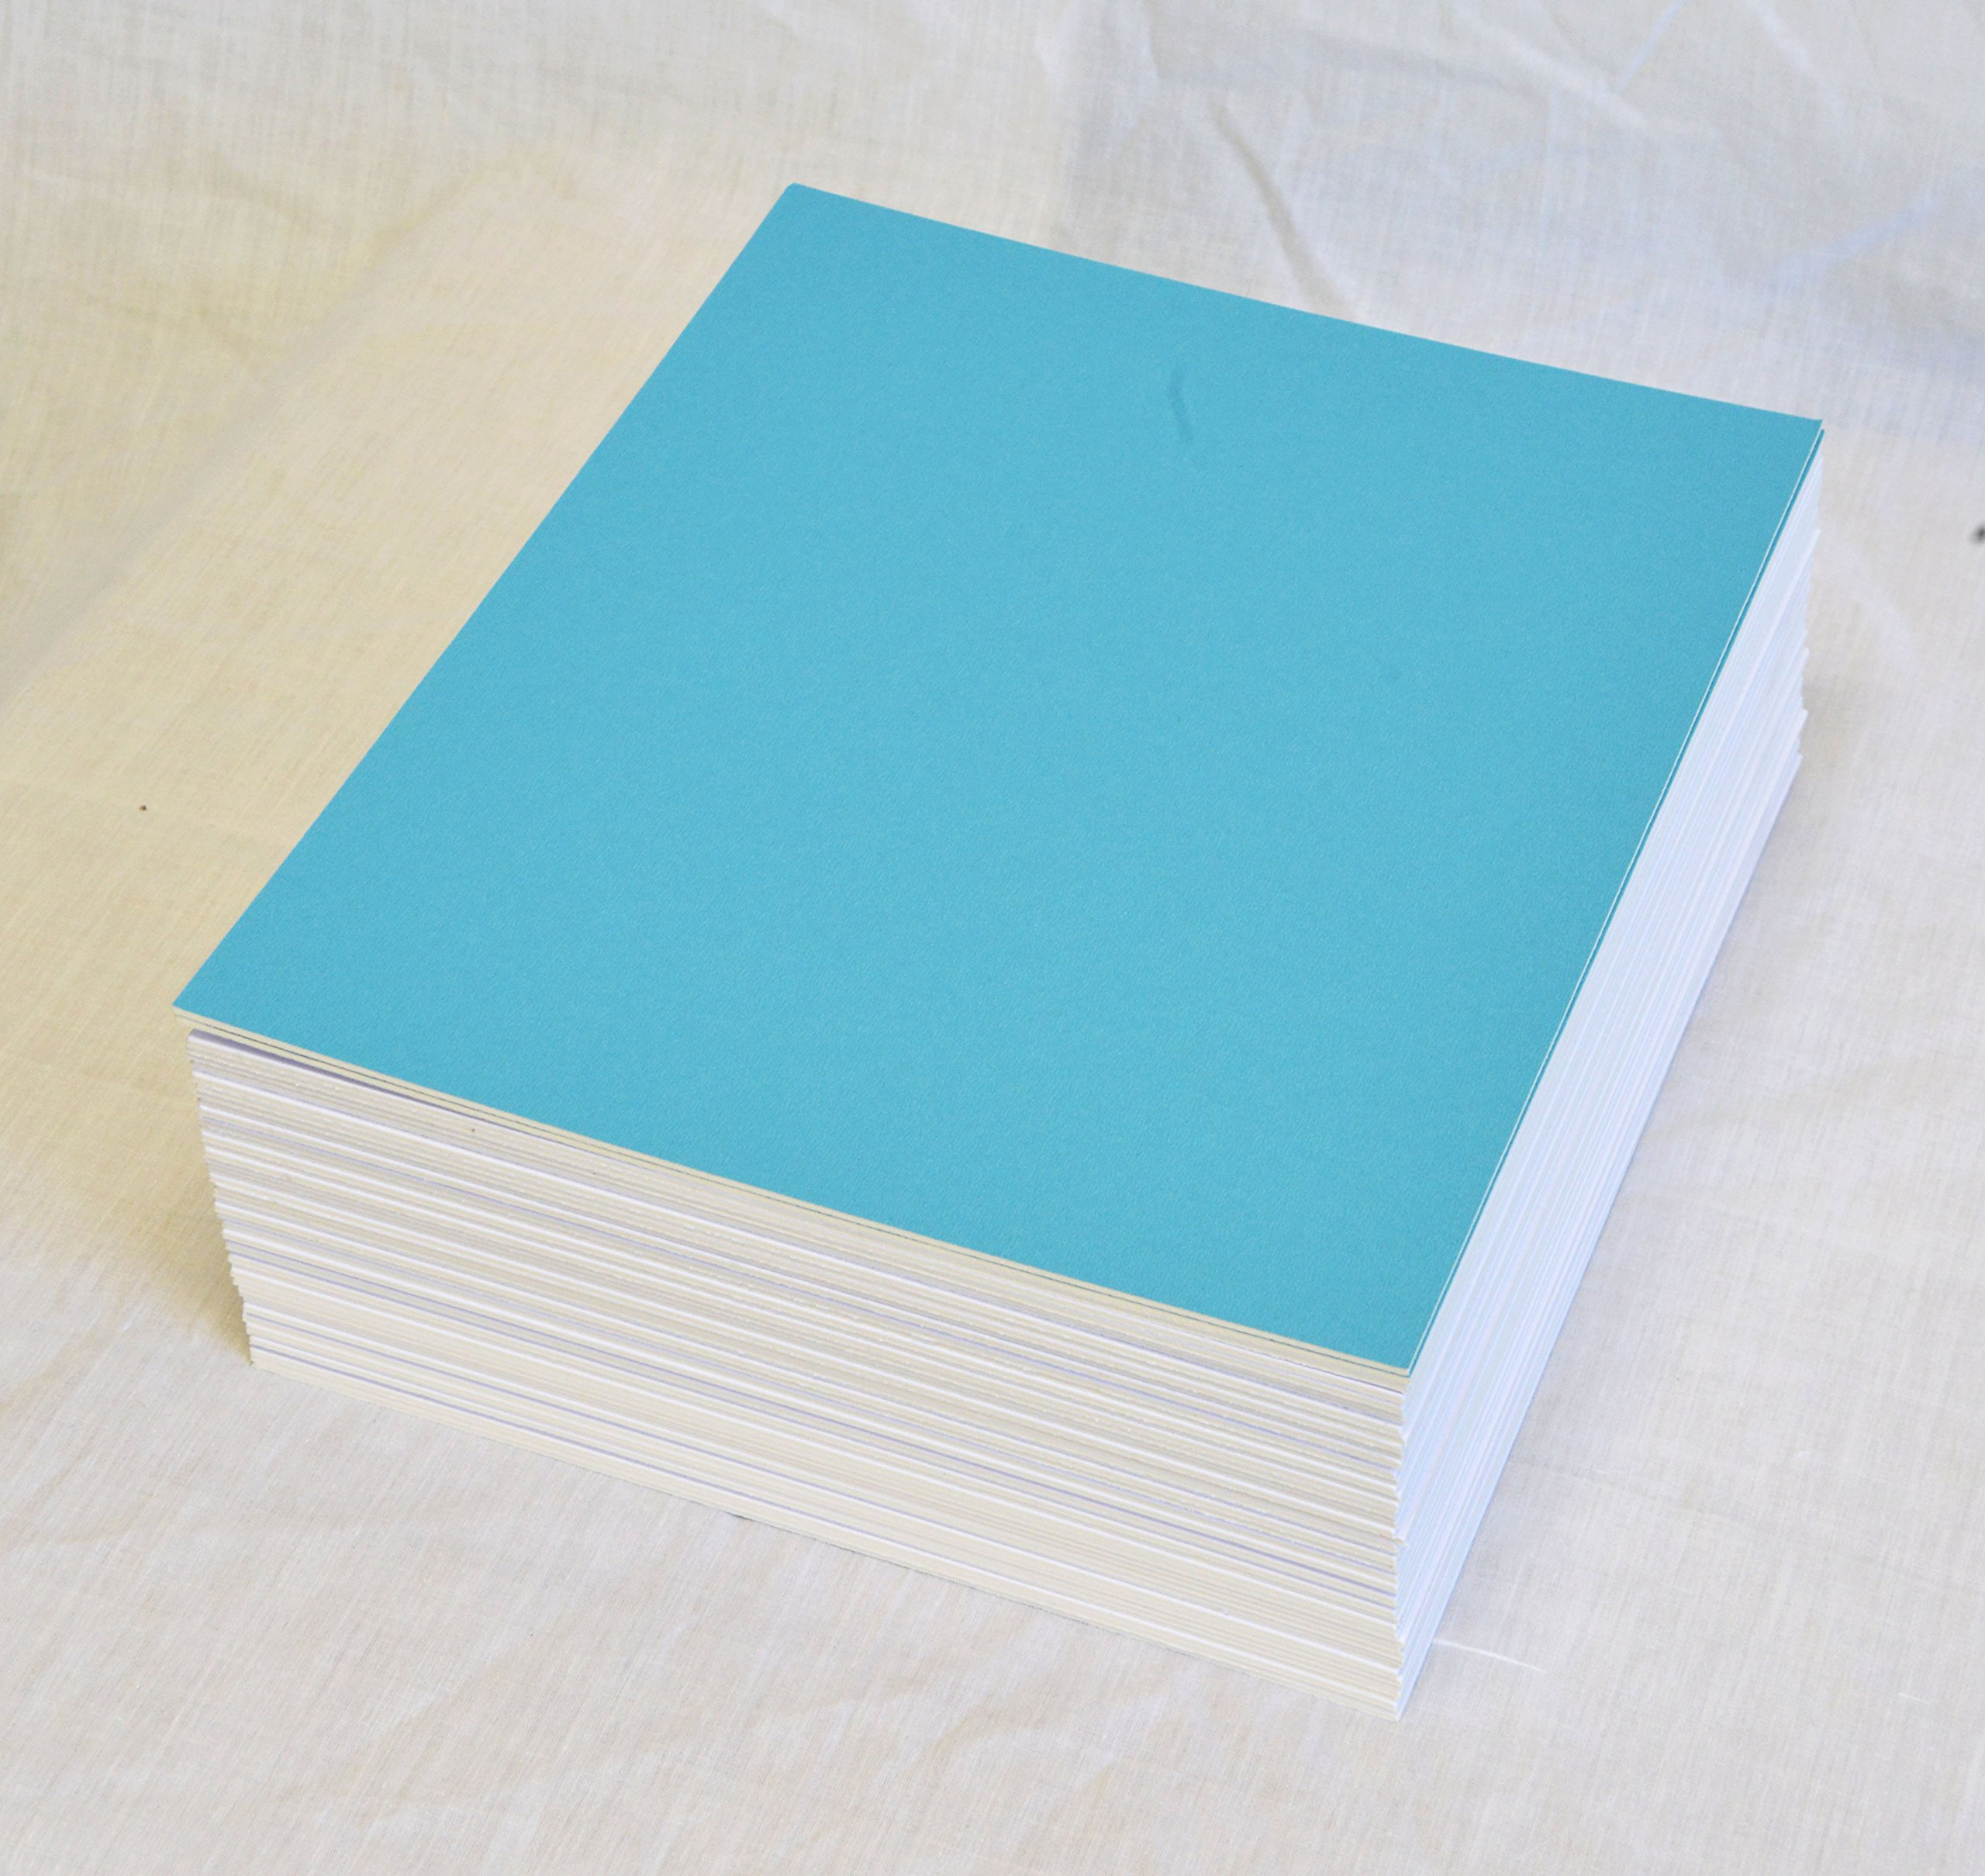 topseller100, Pack of 50 sheets 8x10 UNCUT matboard / mat boards (Light Blue) by Unknown